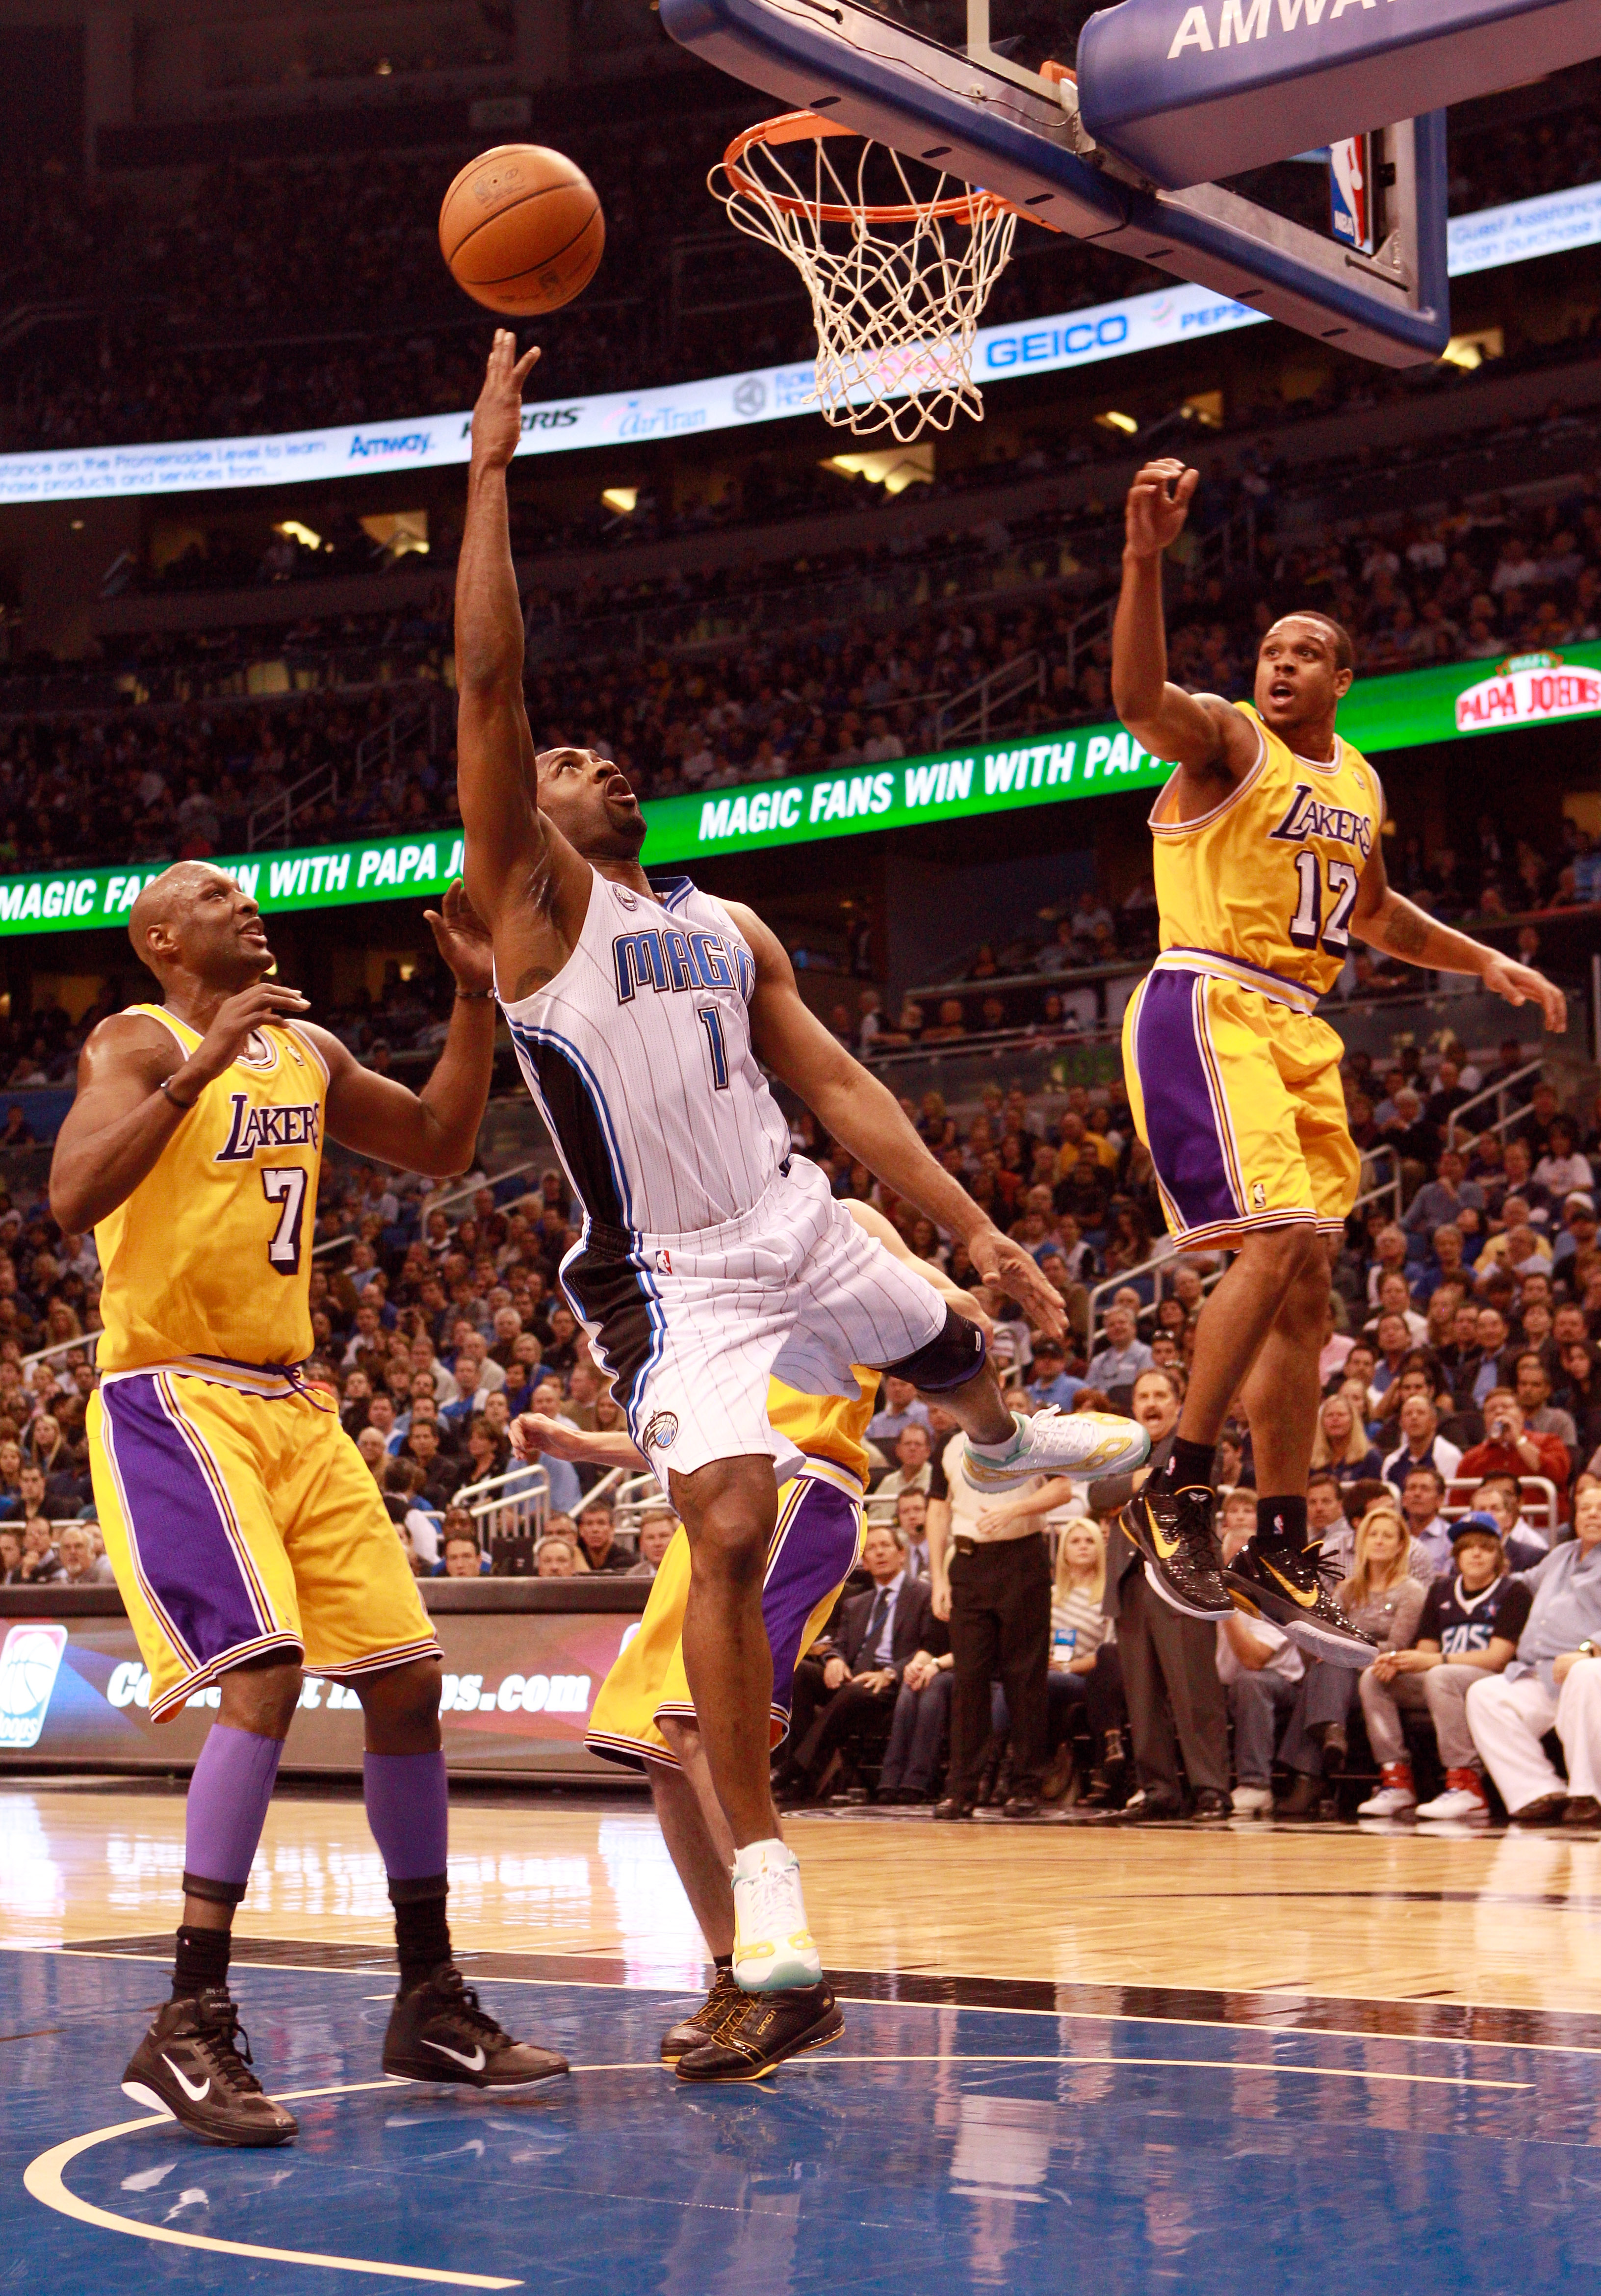 ORLANDO, FL - FEBRUARY 13:  Gilbert Arenas #1 of the Orlando Magic attempts a shot against Lamar Odom #7 and Shannon Brown #12 of the Los Angeles Lakers during the game at Amway Arena on February 13, 2011 in Orlando, Florida.  NOTE TO USER: User expressly